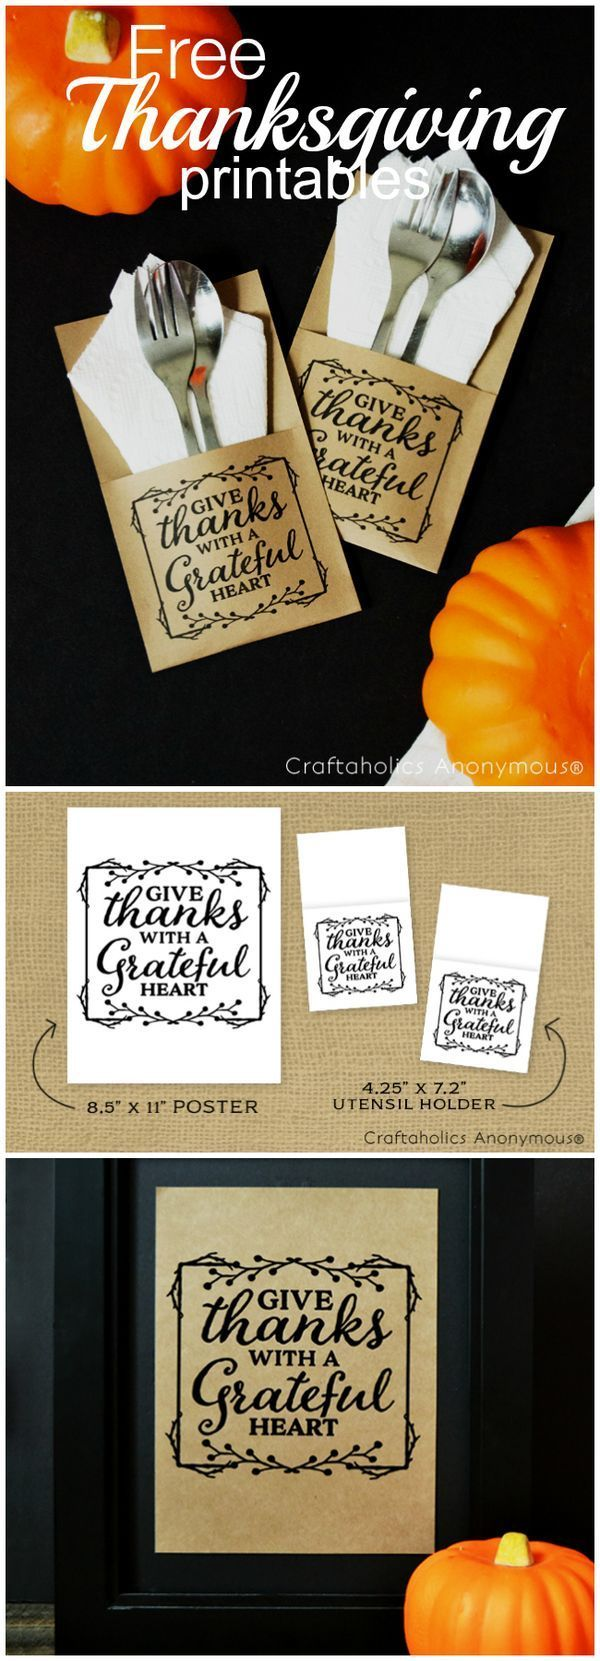 Free Thanksgiving Day Printables/crafts - quote + DIY utensil holder idea. Print on kraft paper for a rustic look! http://www.CraftaholicsAnonymous.net